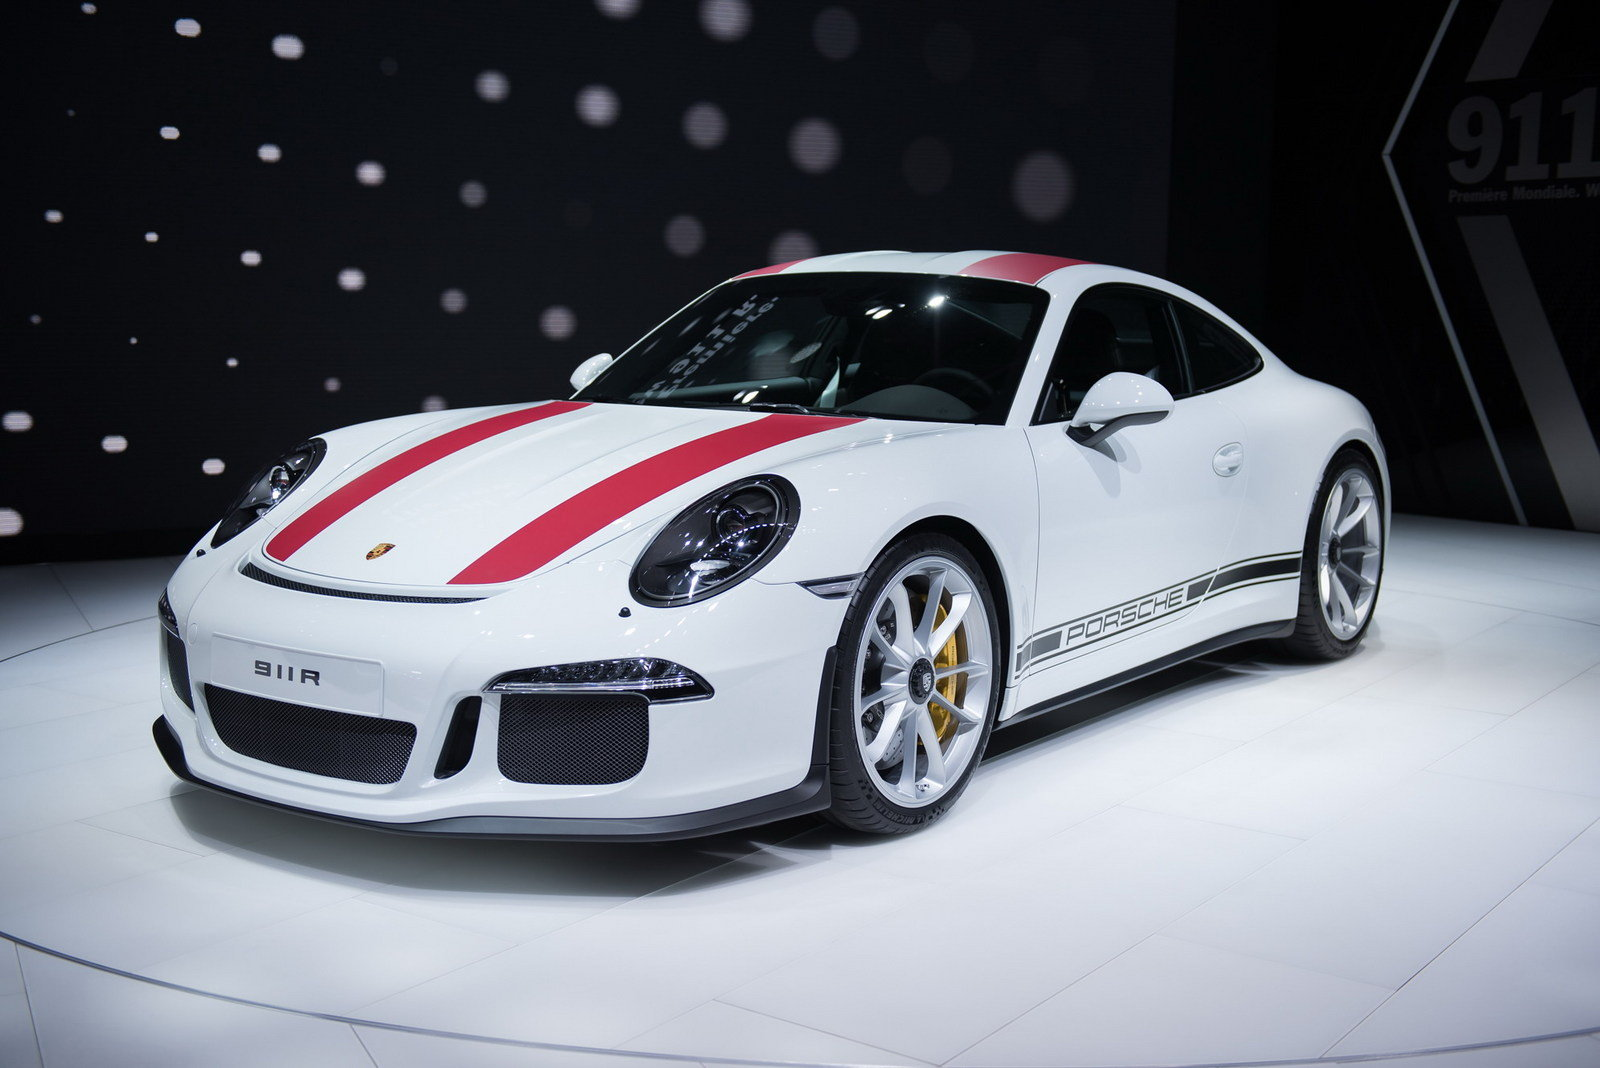 2017 porsche 911 r picture 668425 car review top speed. Black Bedroom Furniture Sets. Home Design Ideas